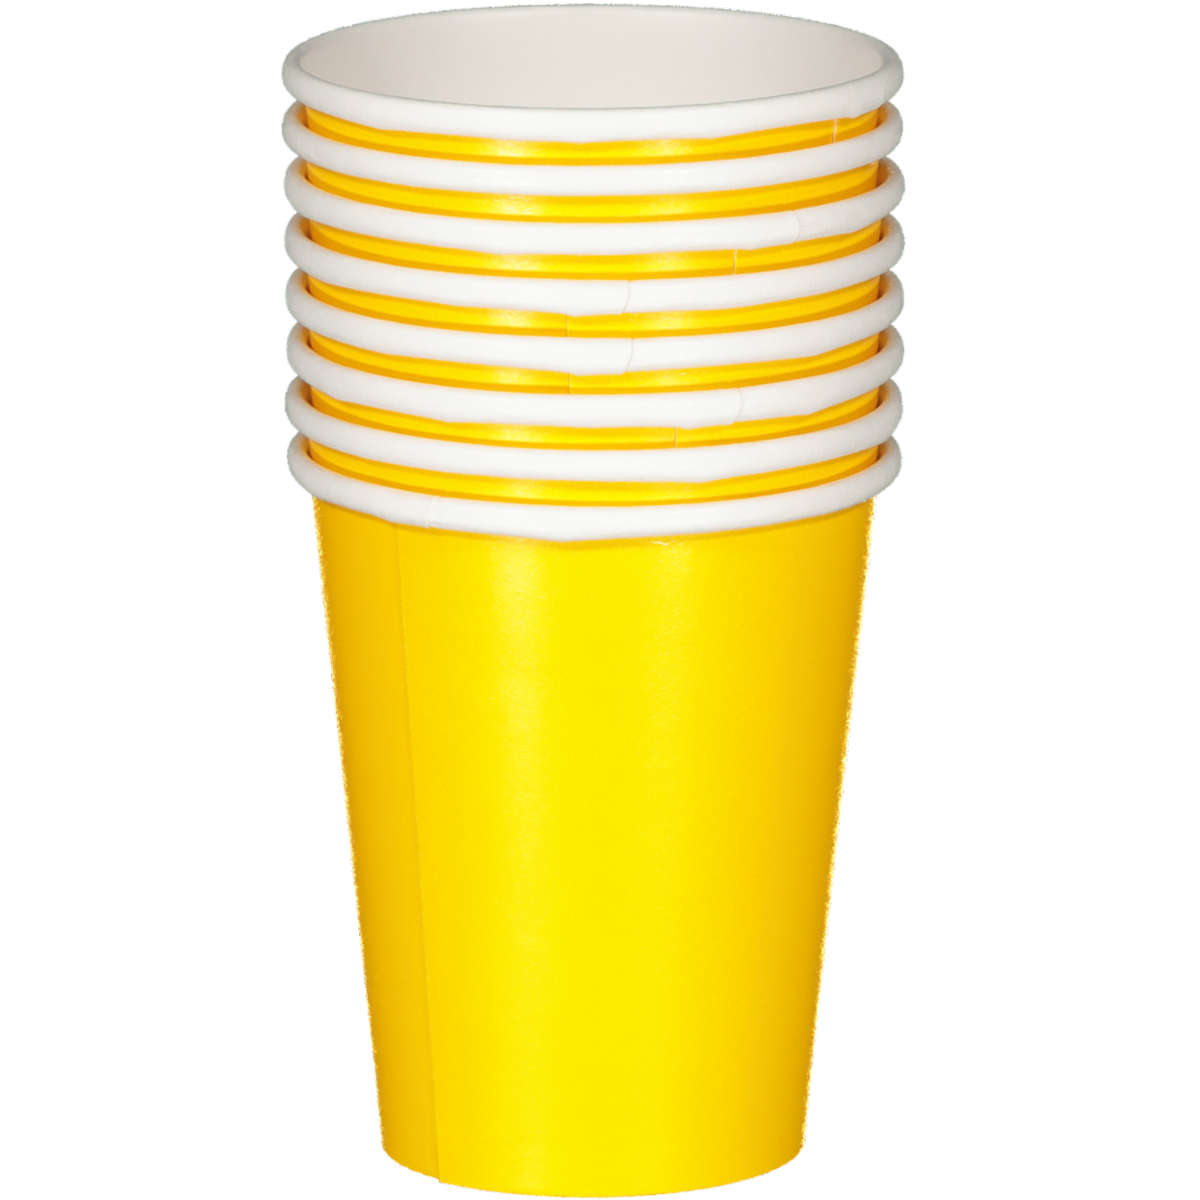 SOLID SCHOOL BUS YELLOW CUPS 8PCS